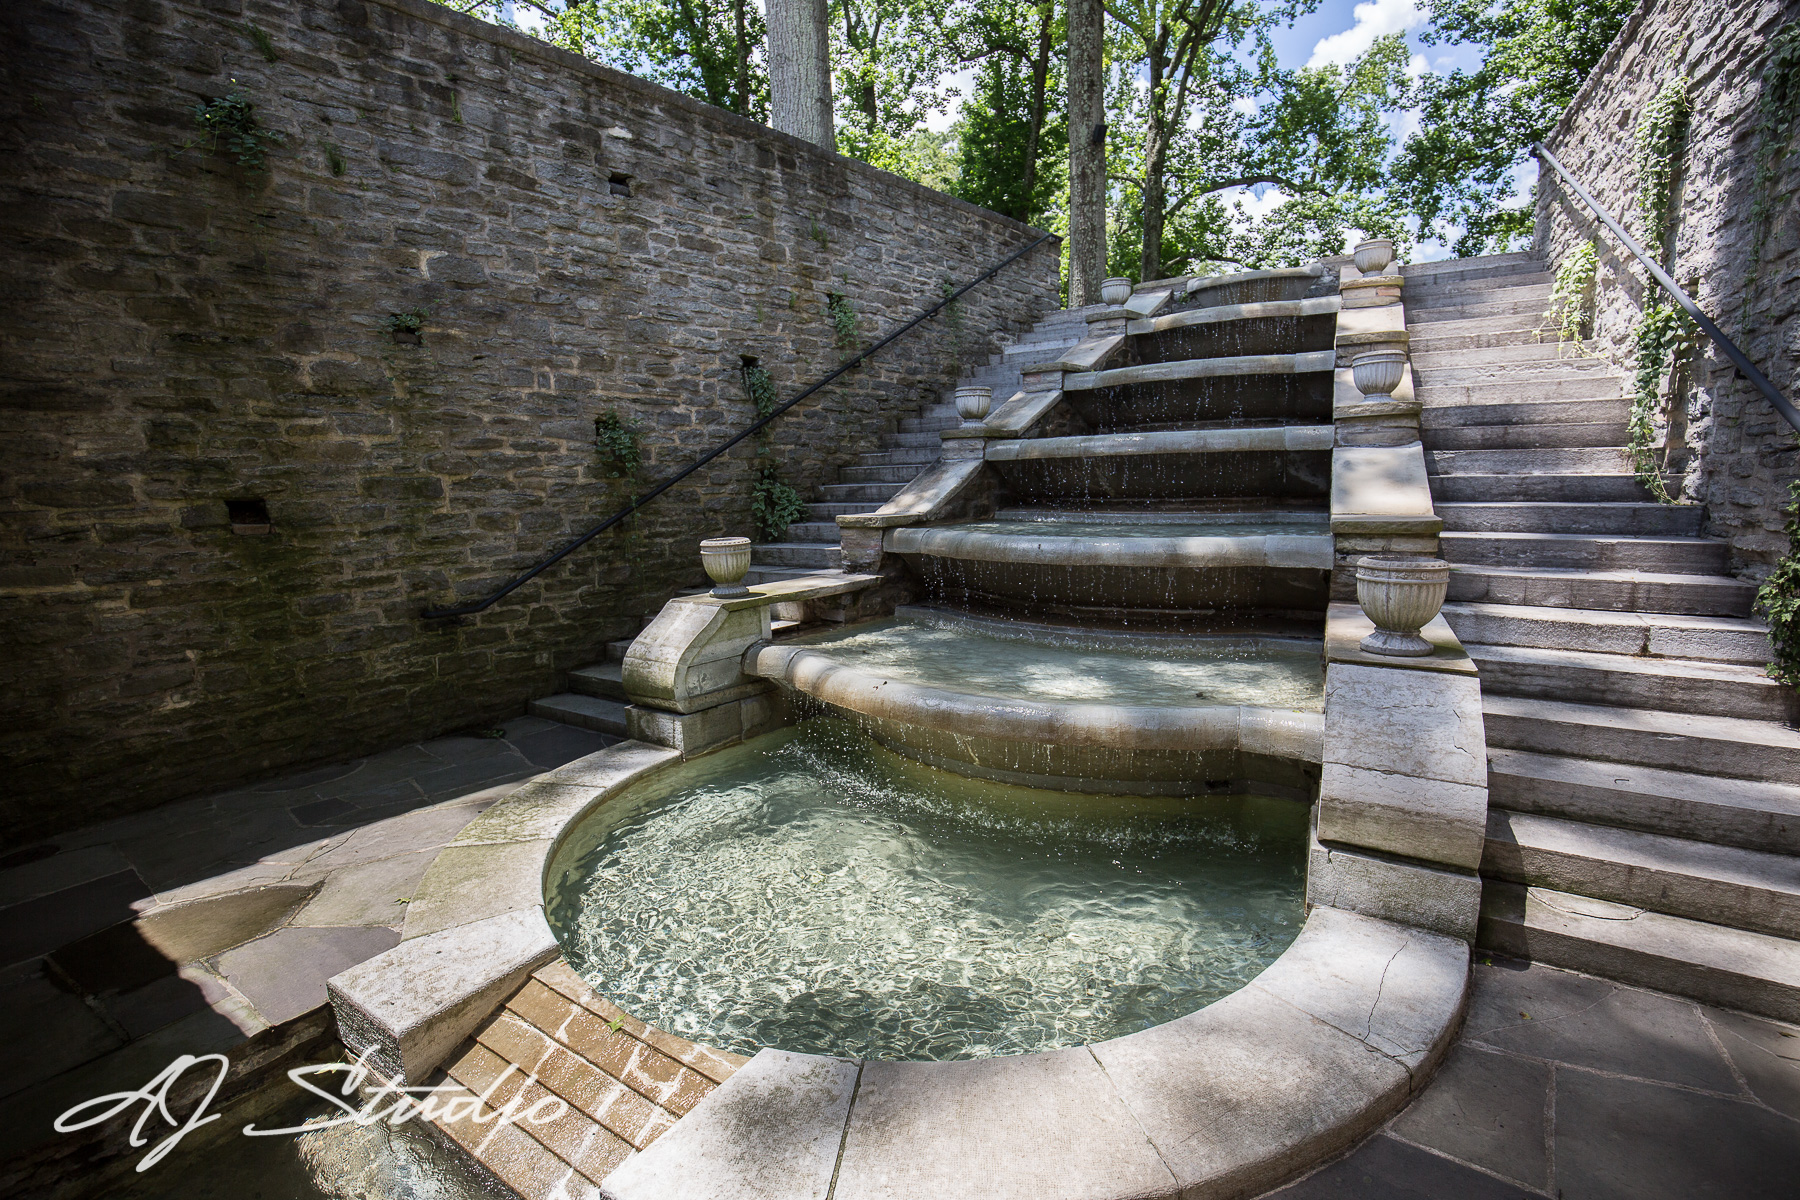 One of our favorite attractions at Greenacres is this elegant stone fountain called the 'cascading fountain', pictured above and below. Just to walk by the water as it gently trickles down each stone brings you peace and a sense of calm.